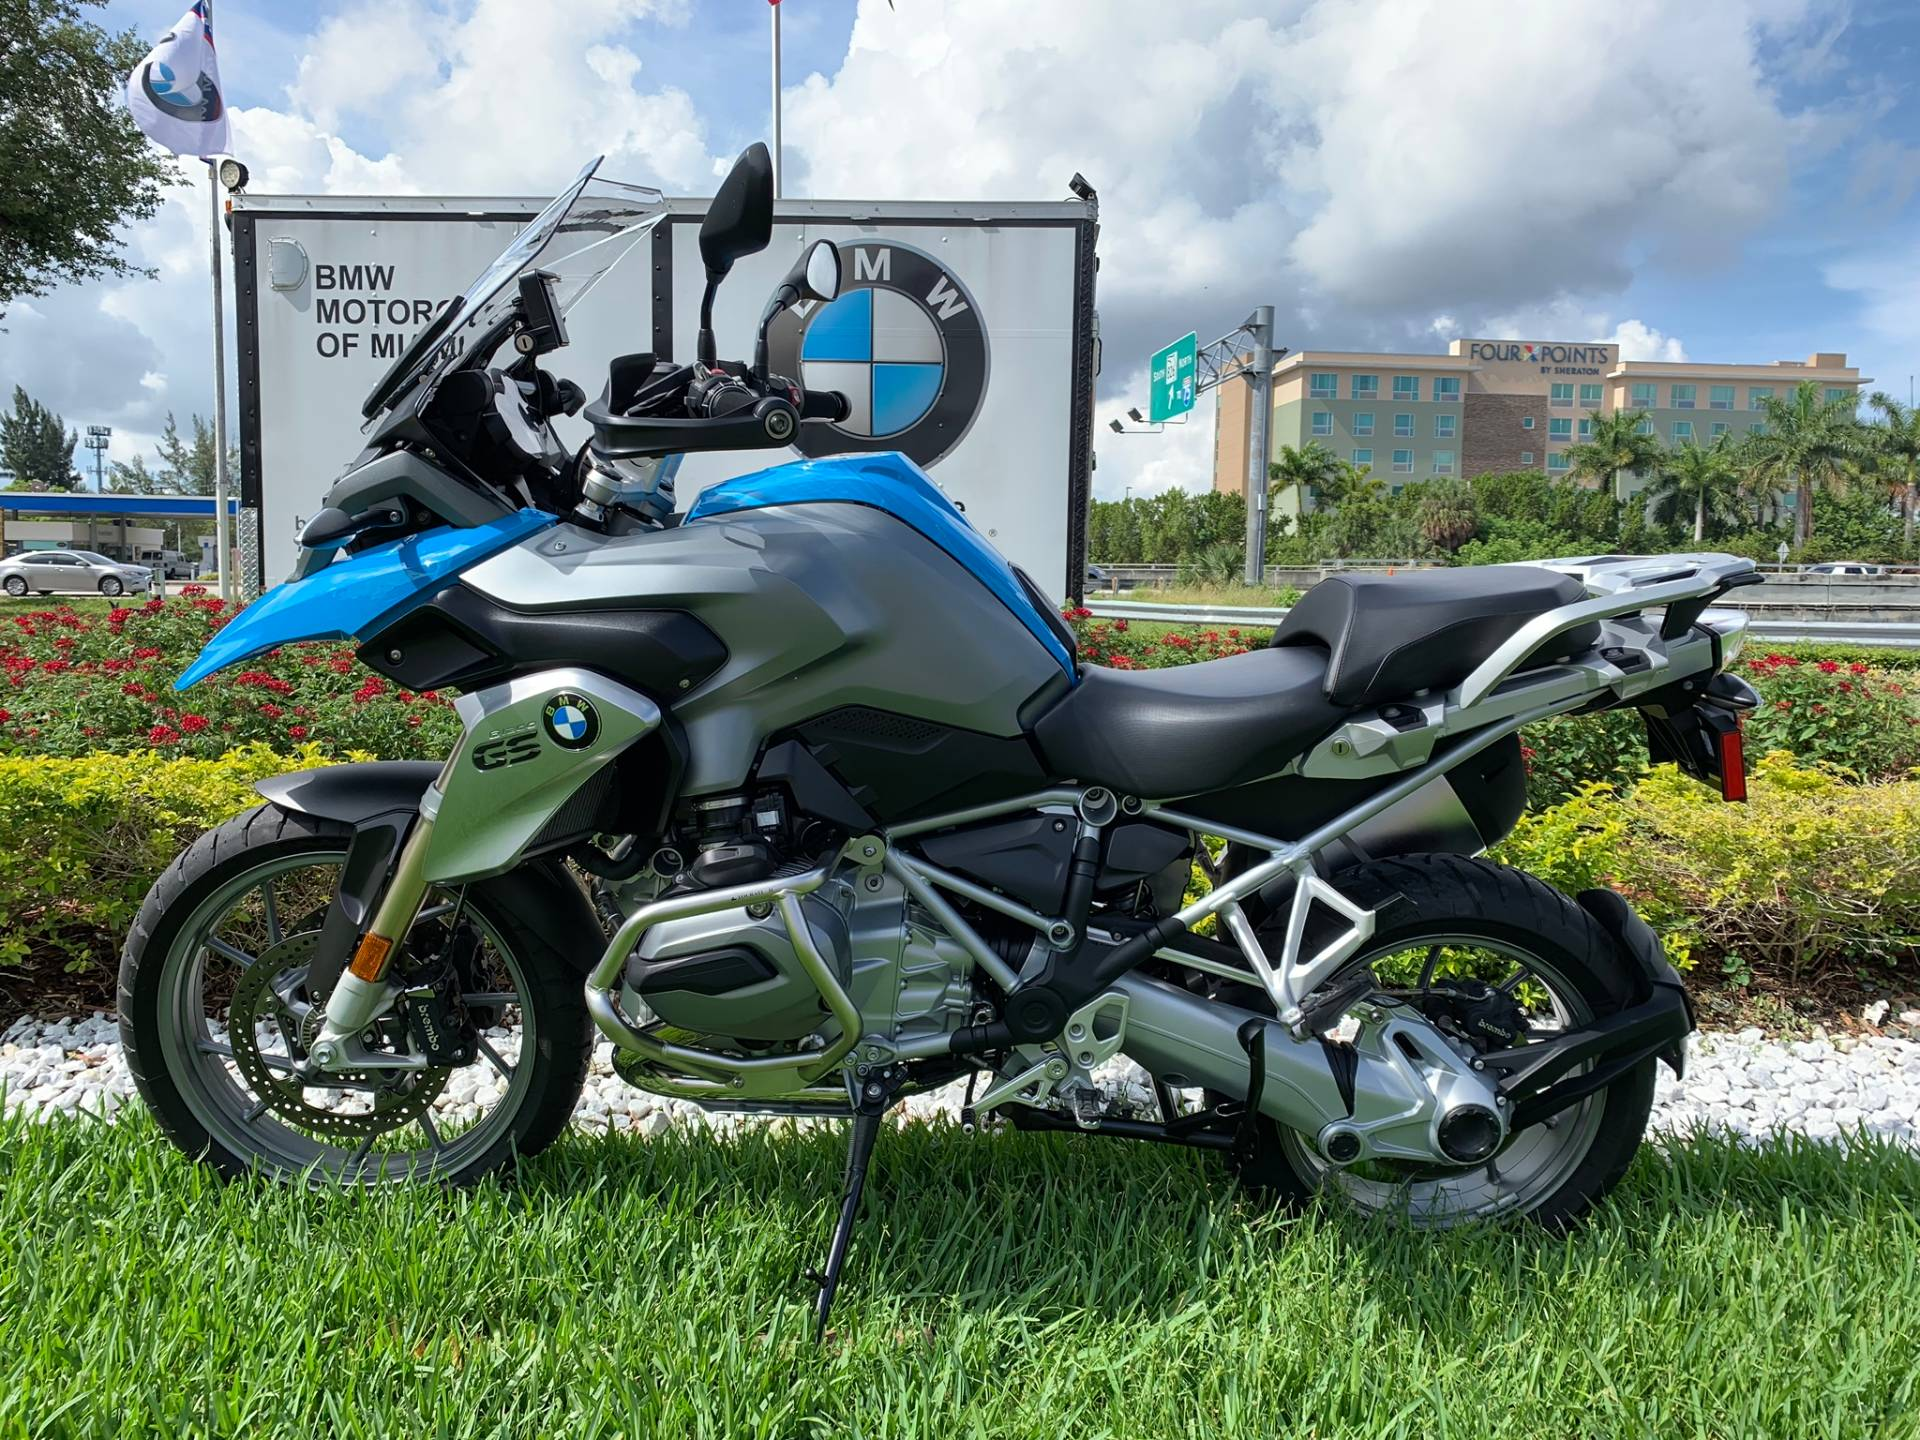 Used 2014 BMW R 1200 GS for sale, Pre-owned BMW R1200GS for sale, BMW Motorcycle Adventure, used BMW GS Fire Blue, BMW Motorcycles of Miami, Motorcycles of Miami, Motorcycles Miami, New Motorcycles, Used Motorcycles, pre-owned. #BMWMotorcyclesOfMiami #MotorcyclesOfMiami - Photo 1